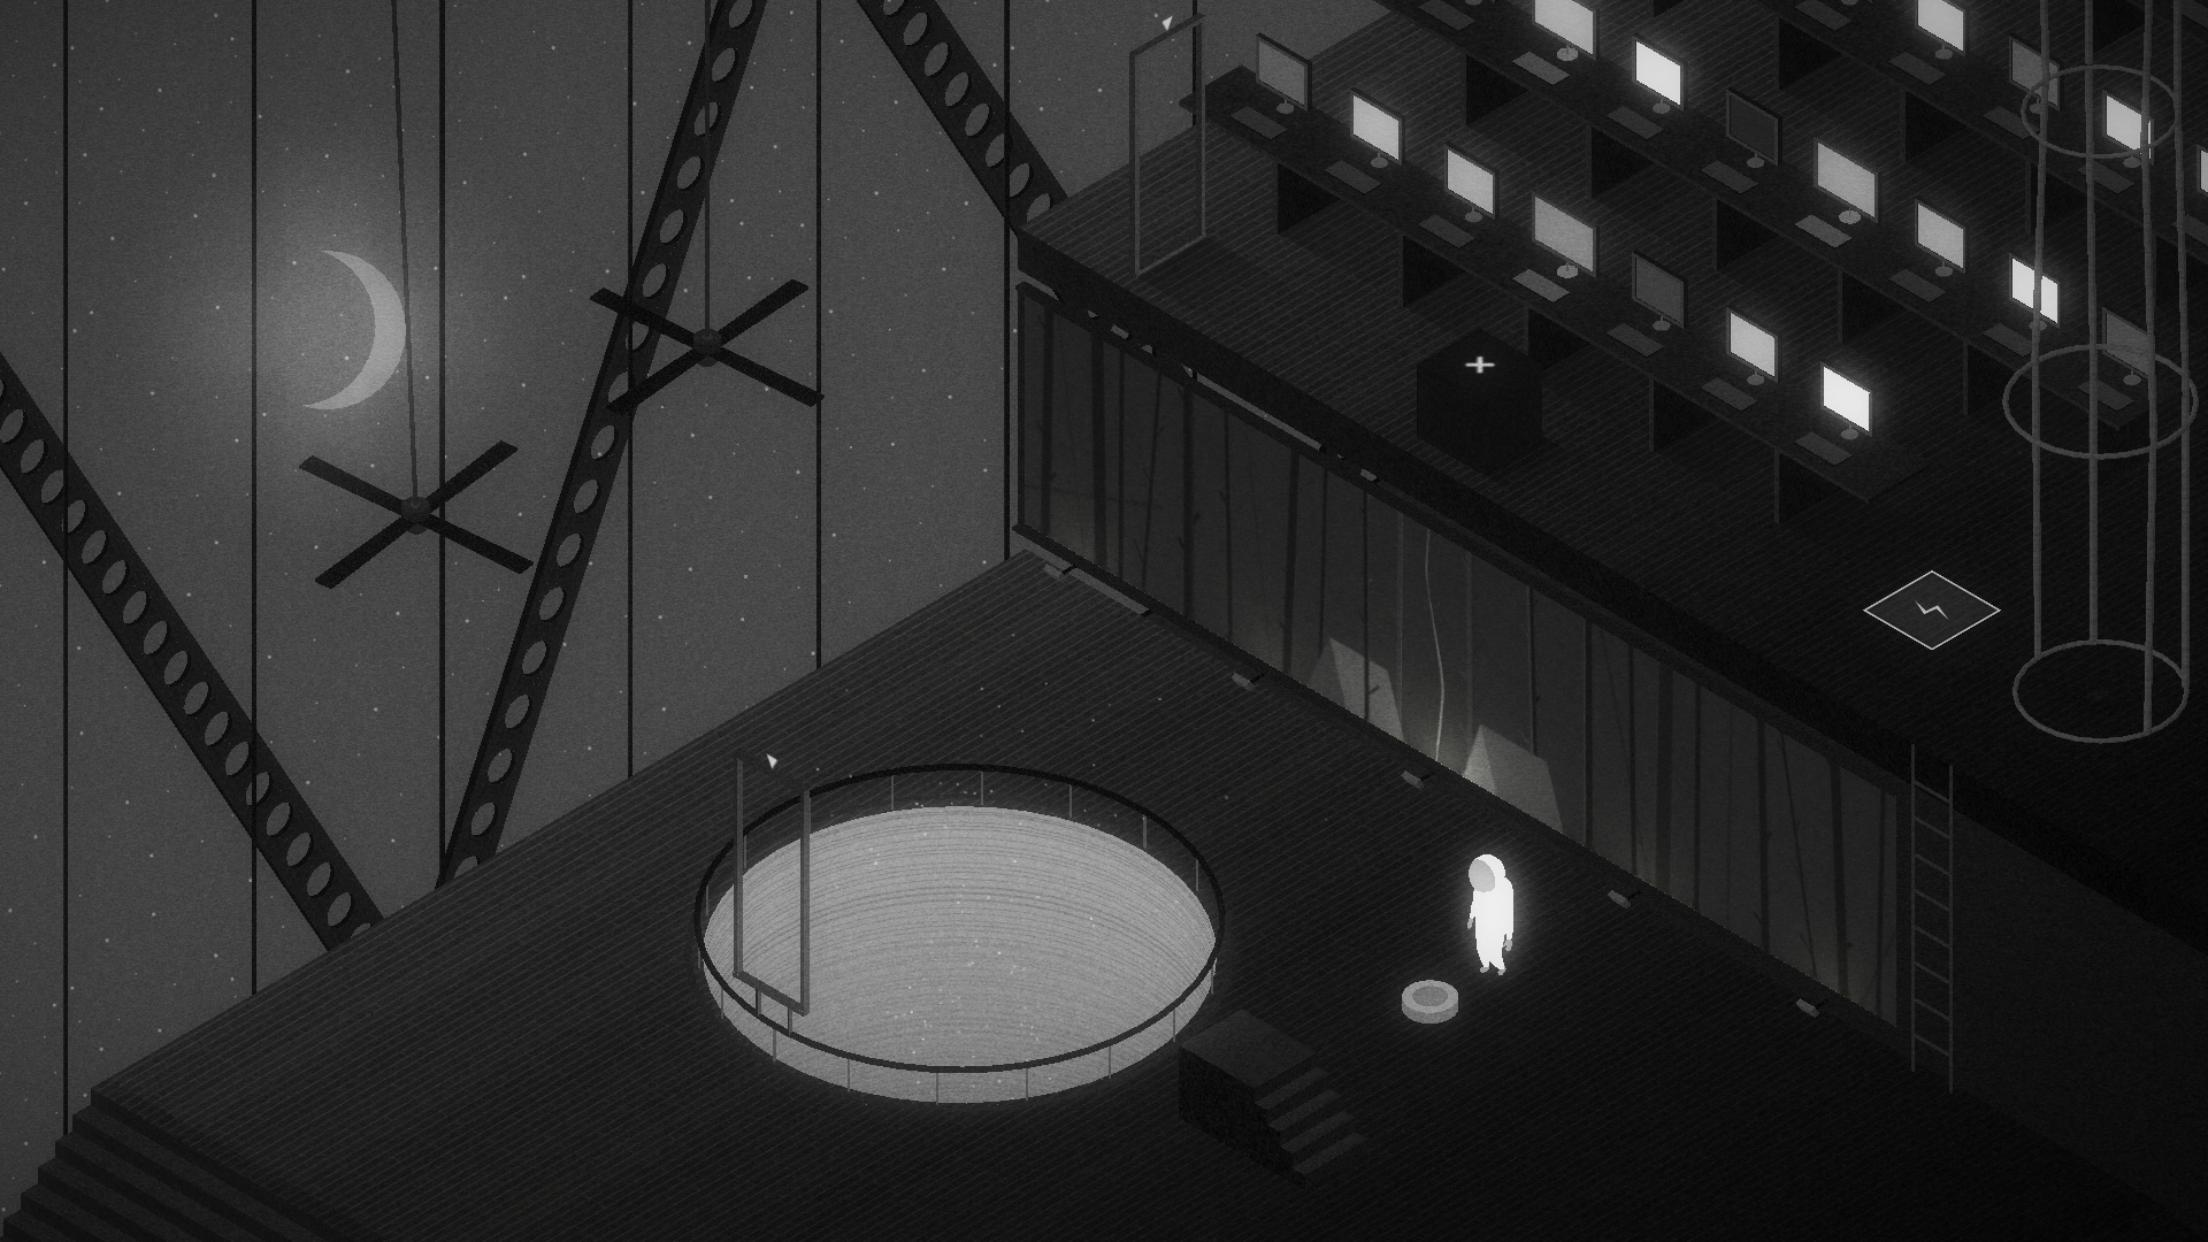 Starman is a cool isometric puzzler with some monochrome vibes, coming to iOS November 7th